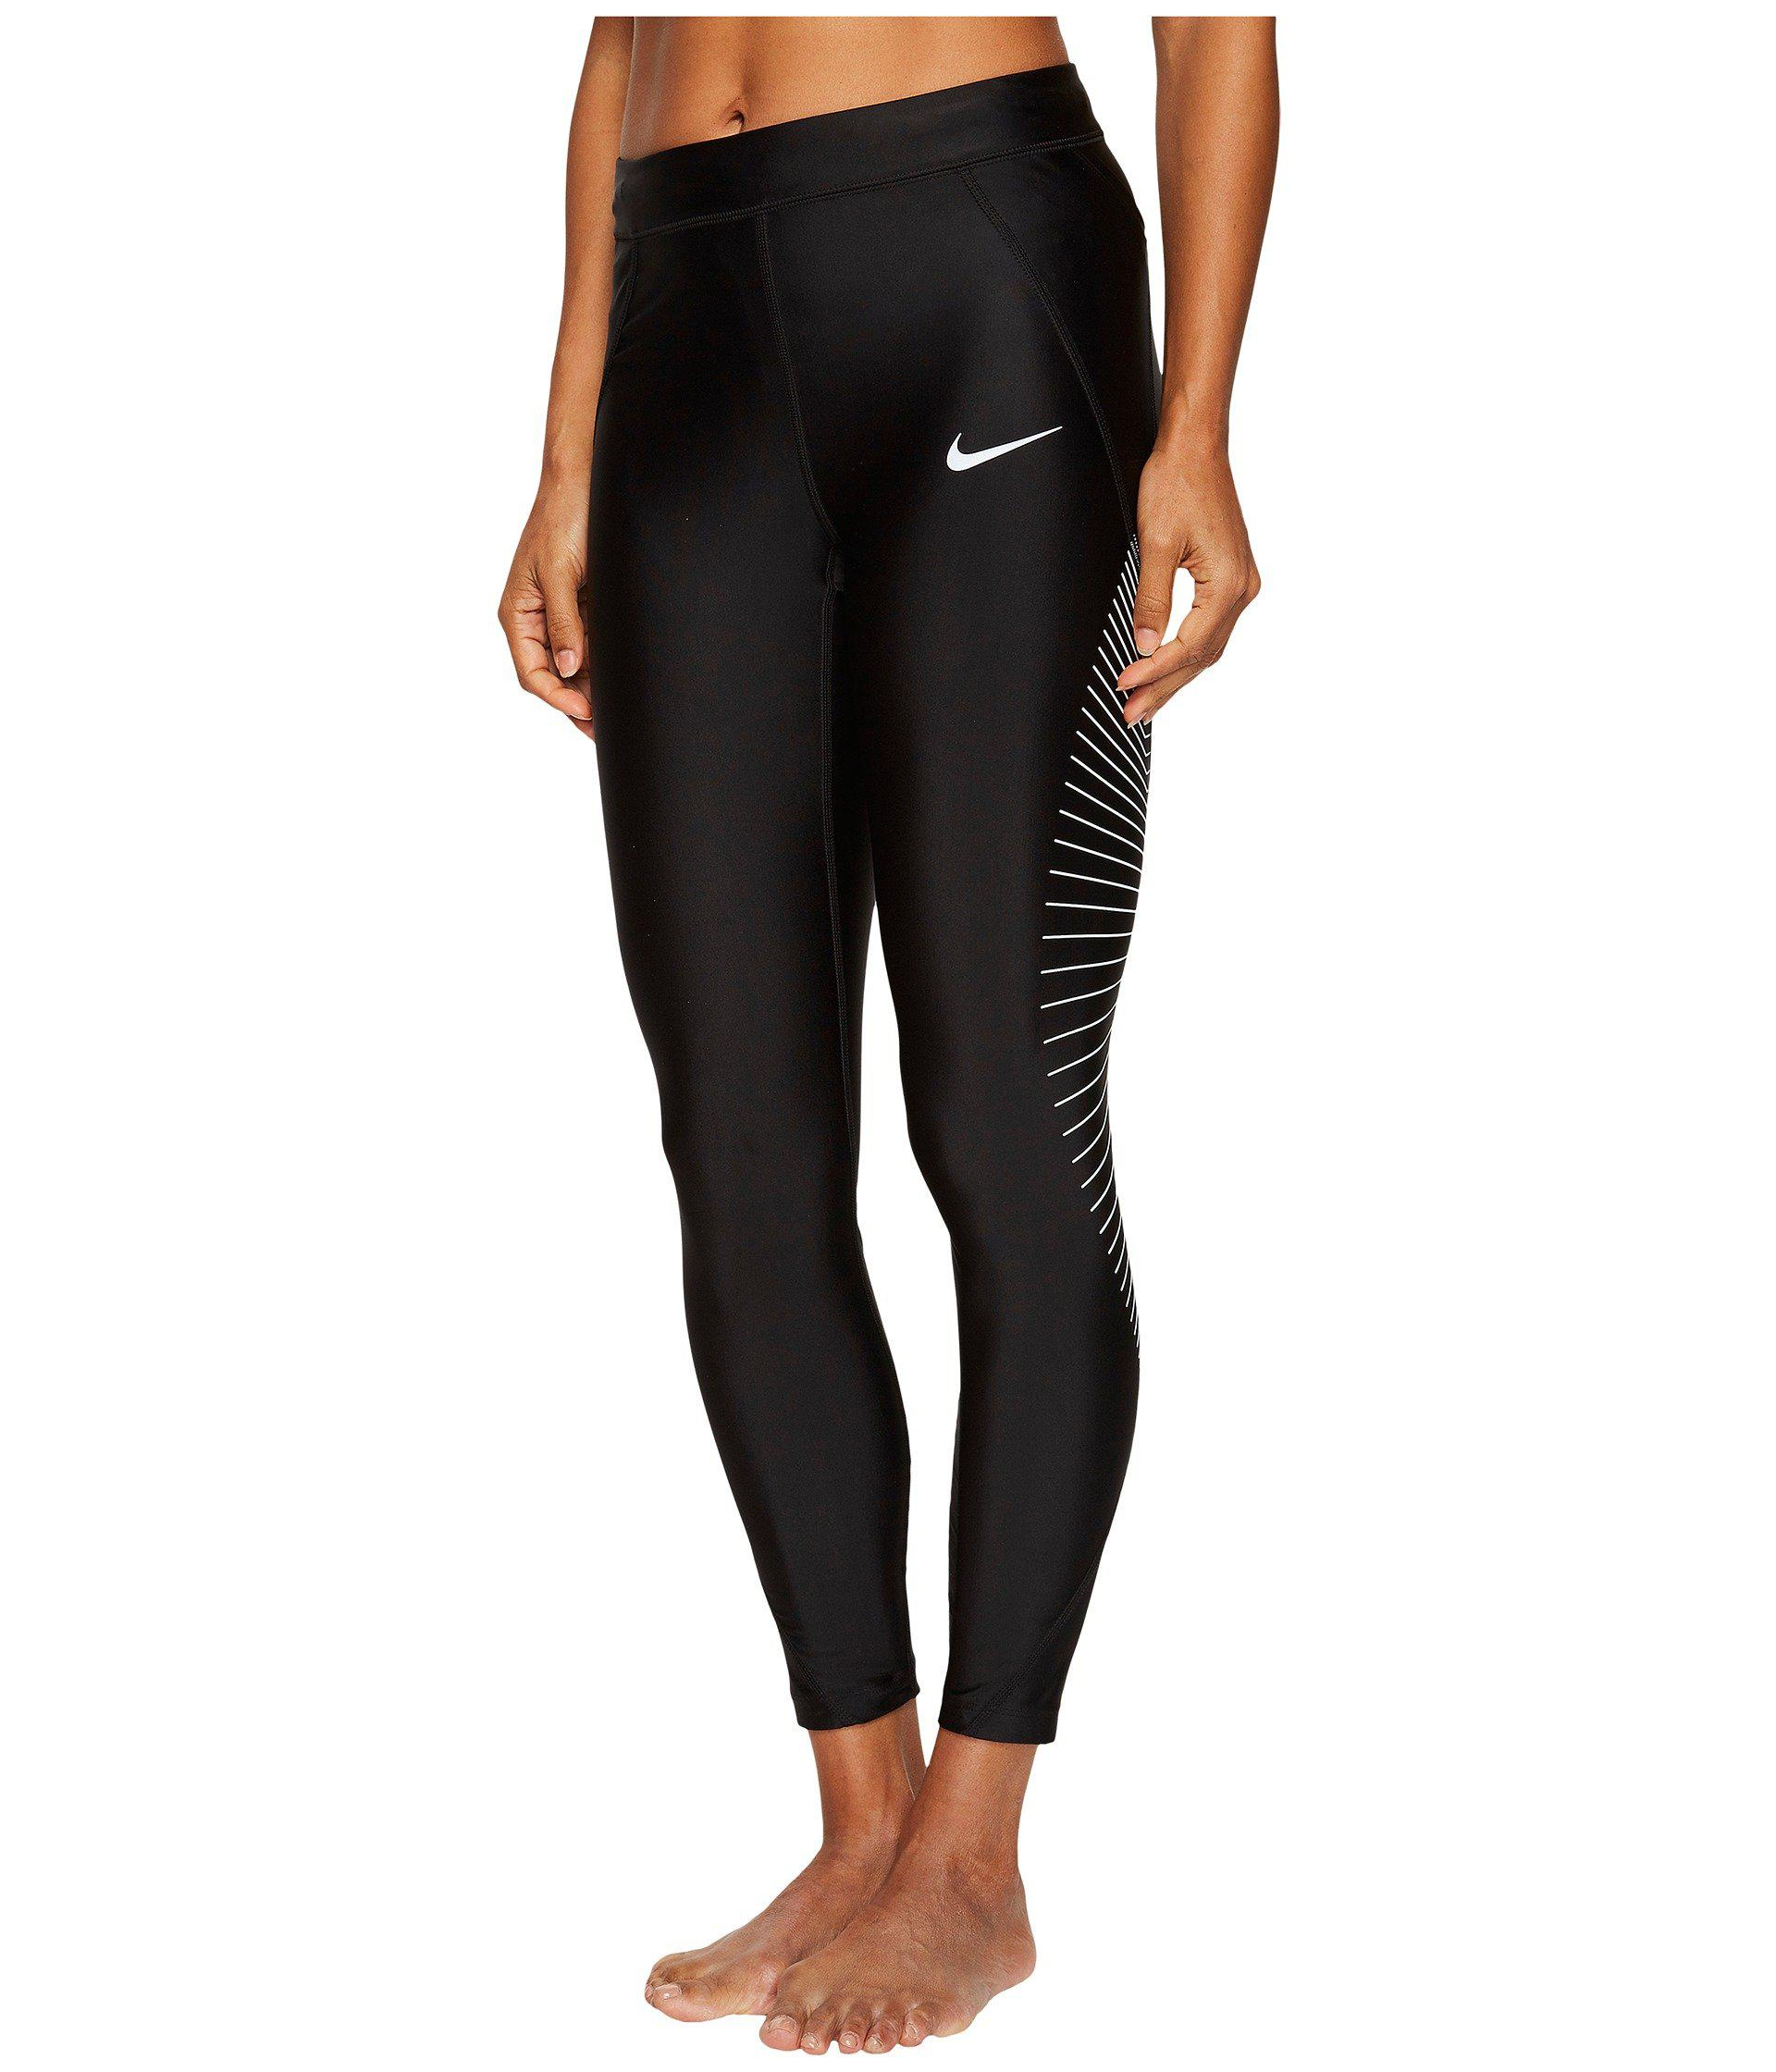 d7b5b1ba90902 Lyst - Nike Power Speed 7 8 Graphic Running Tight in Black